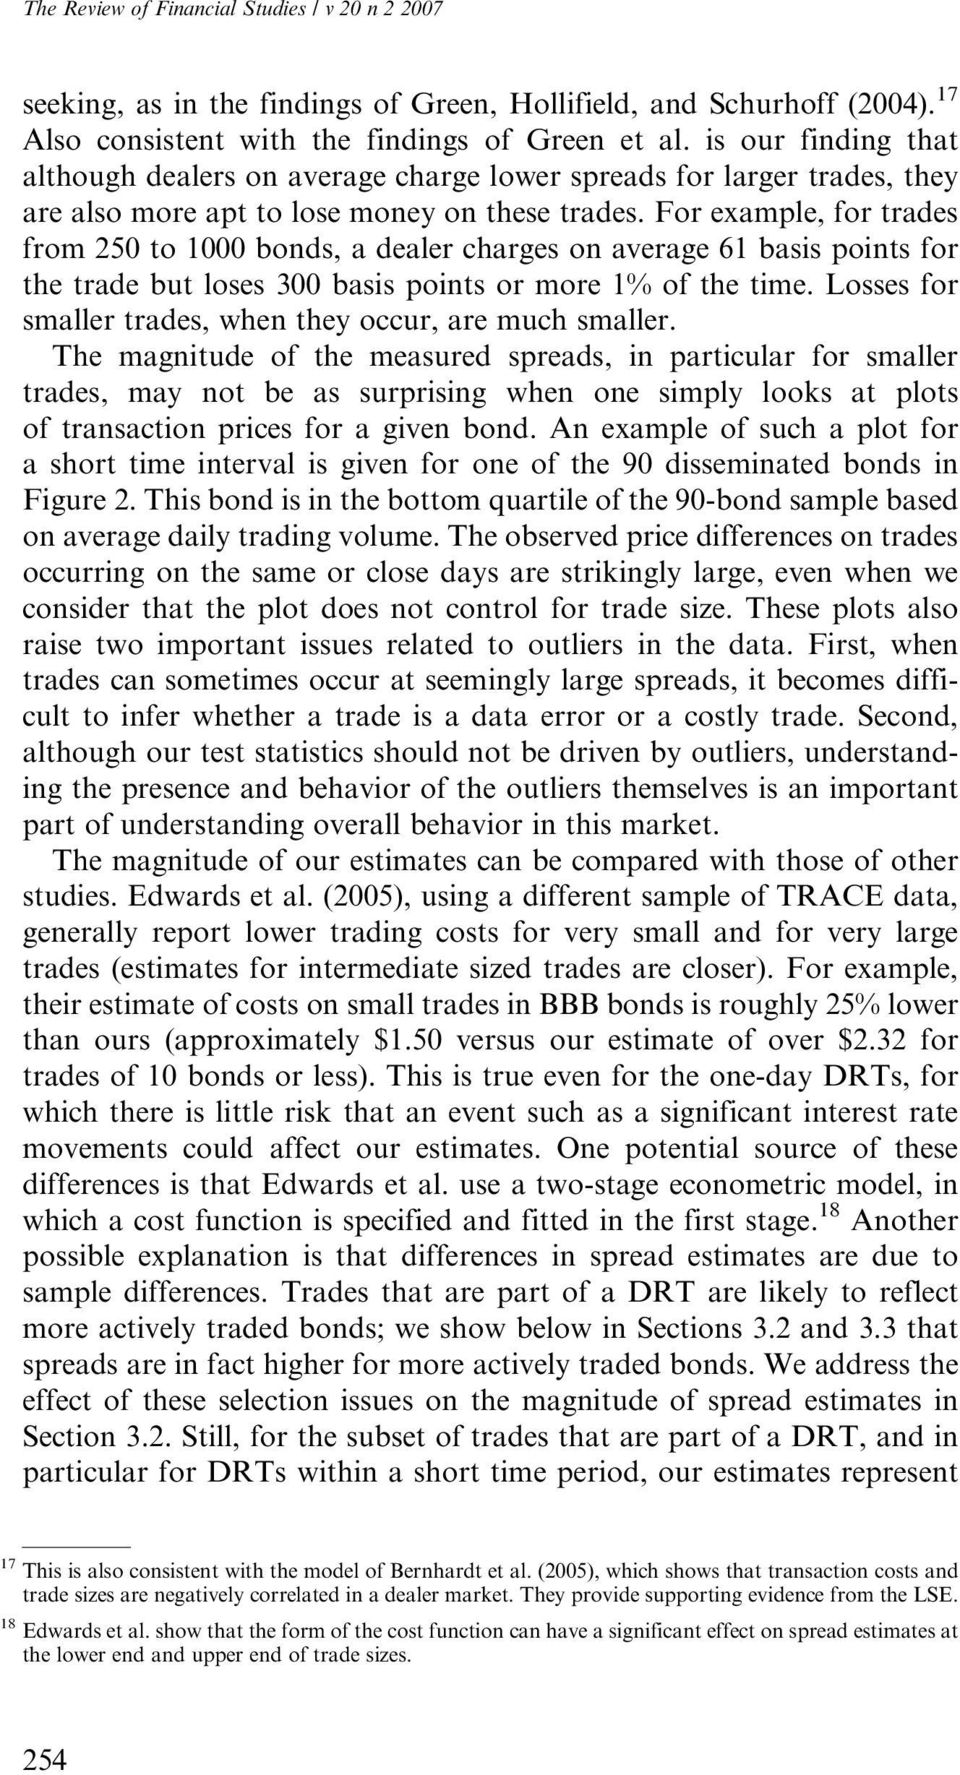 For example, for trades from 250 to 1000 bonds, a dealer charges on average 61 basis points for the trade but loses 300 basis points or more 1% of the time.